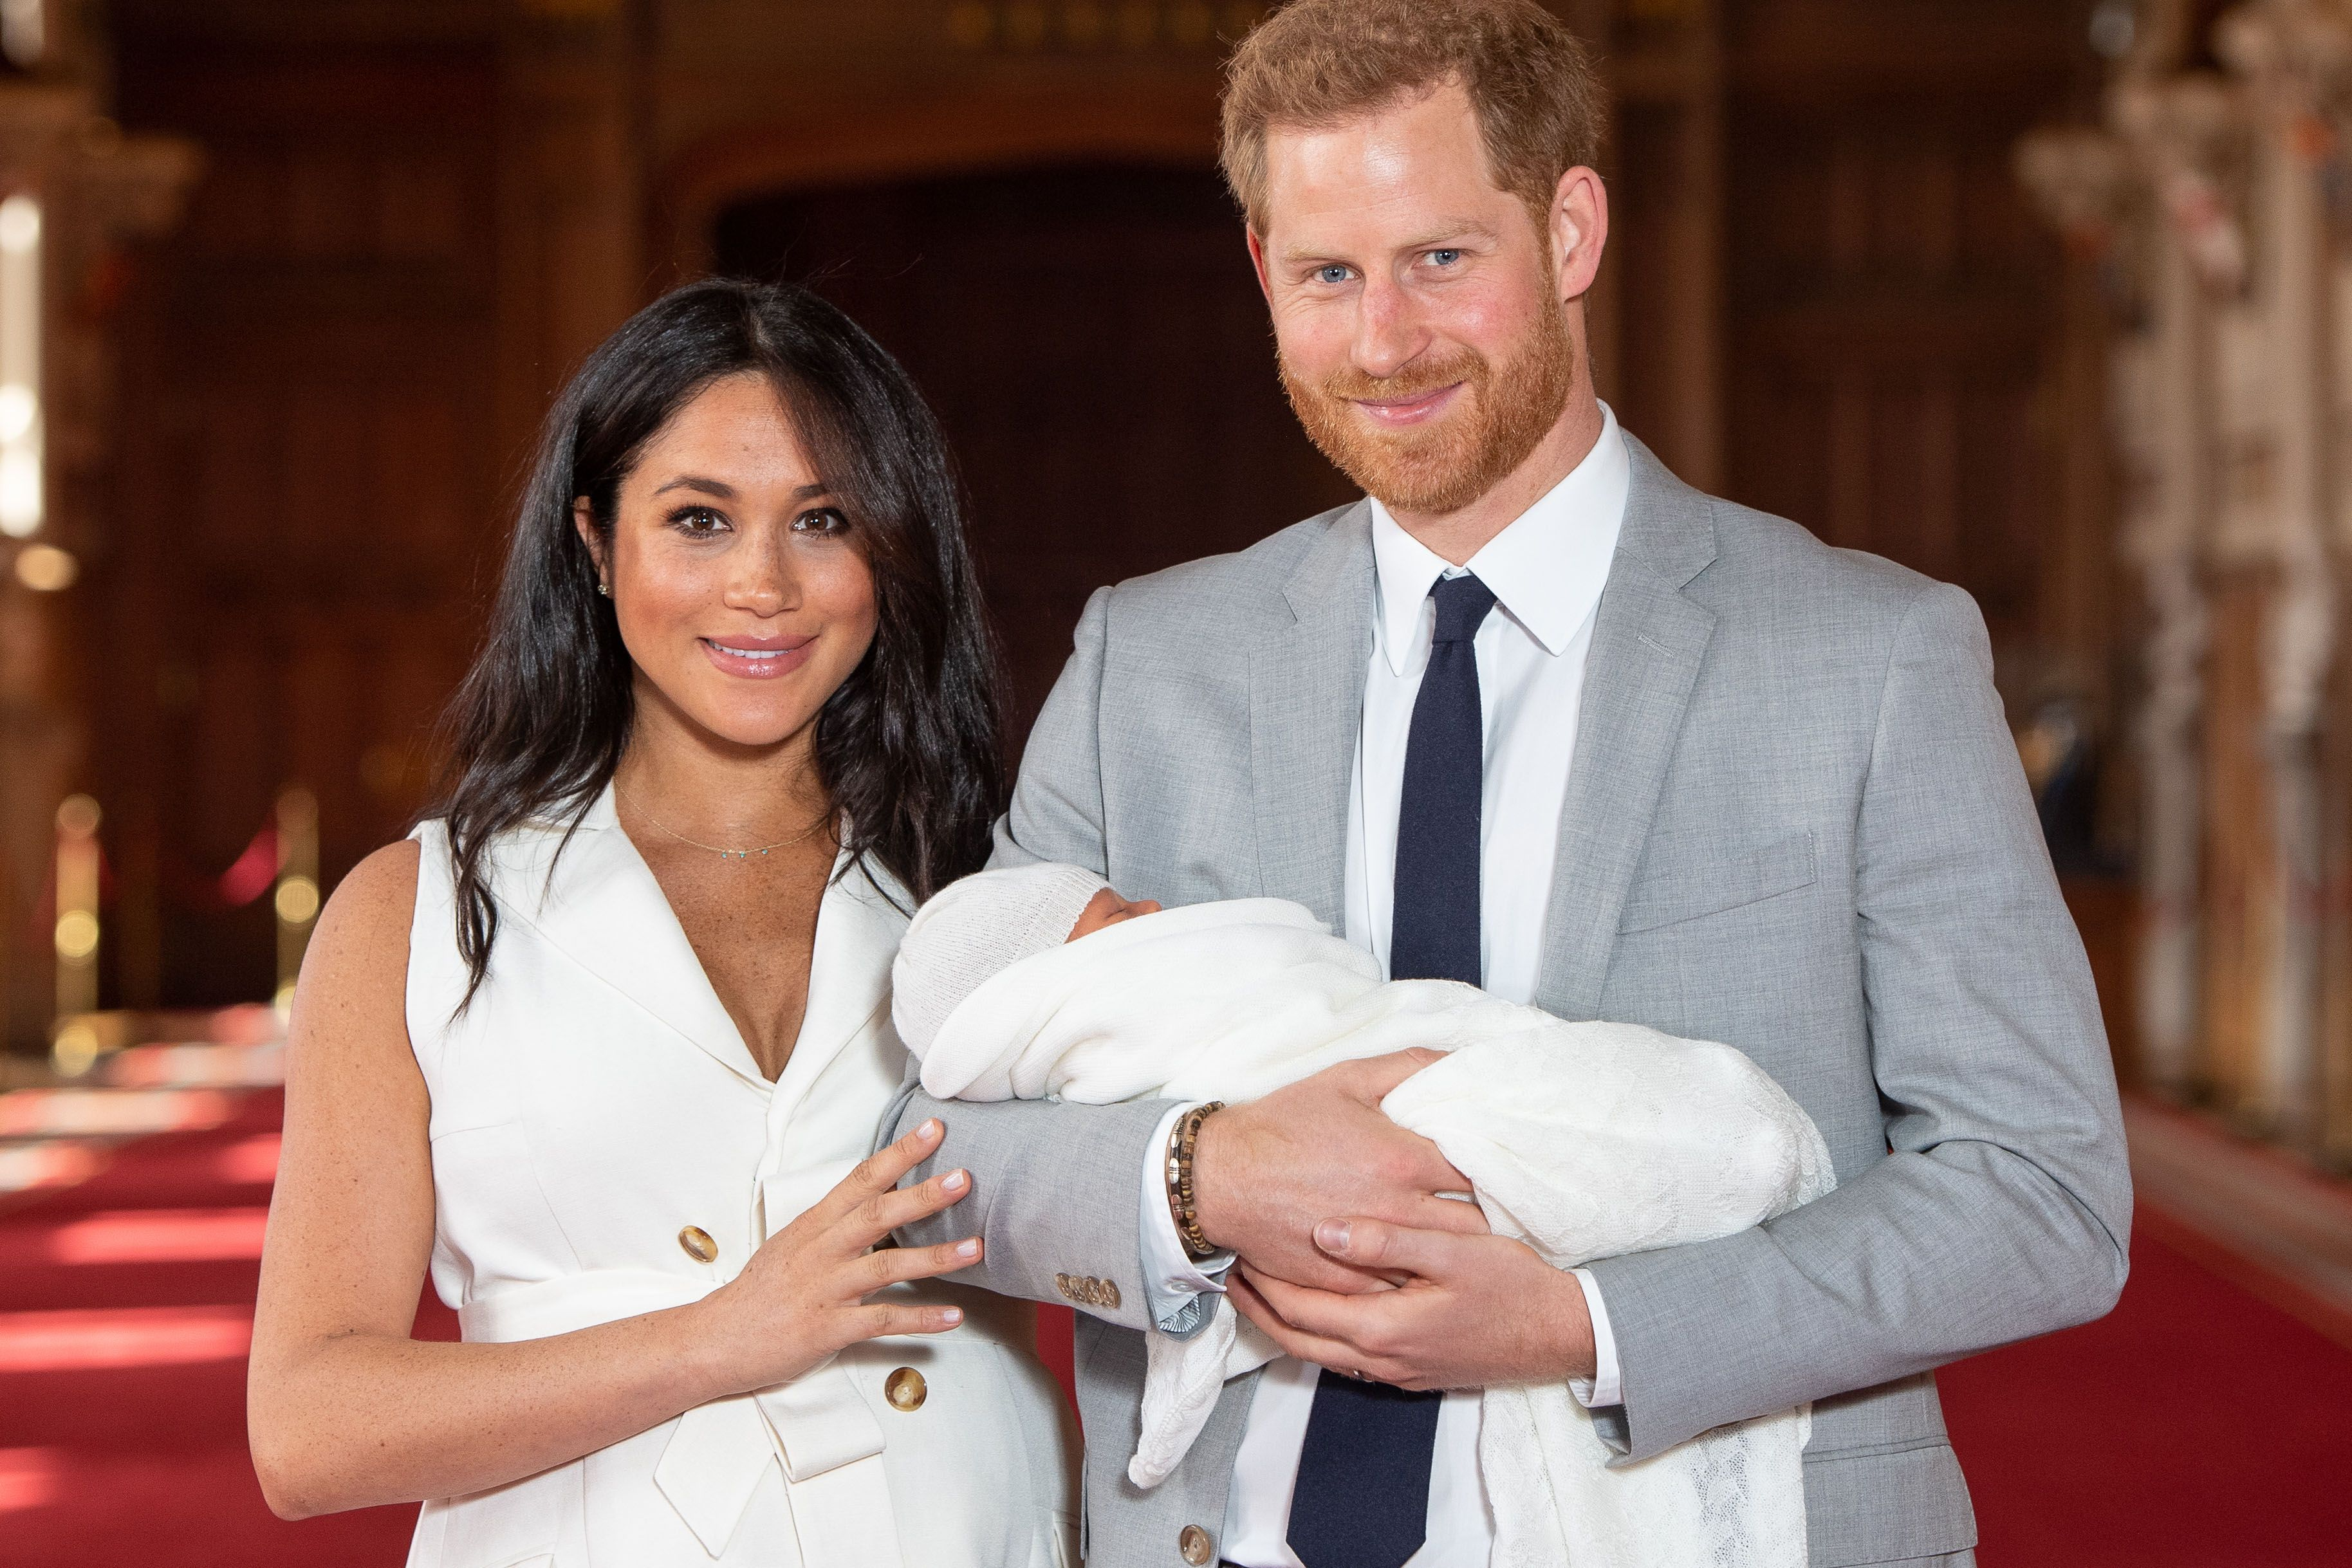 The Duchess of Sussex shares a new photo of baby Archie for Harry's birthday